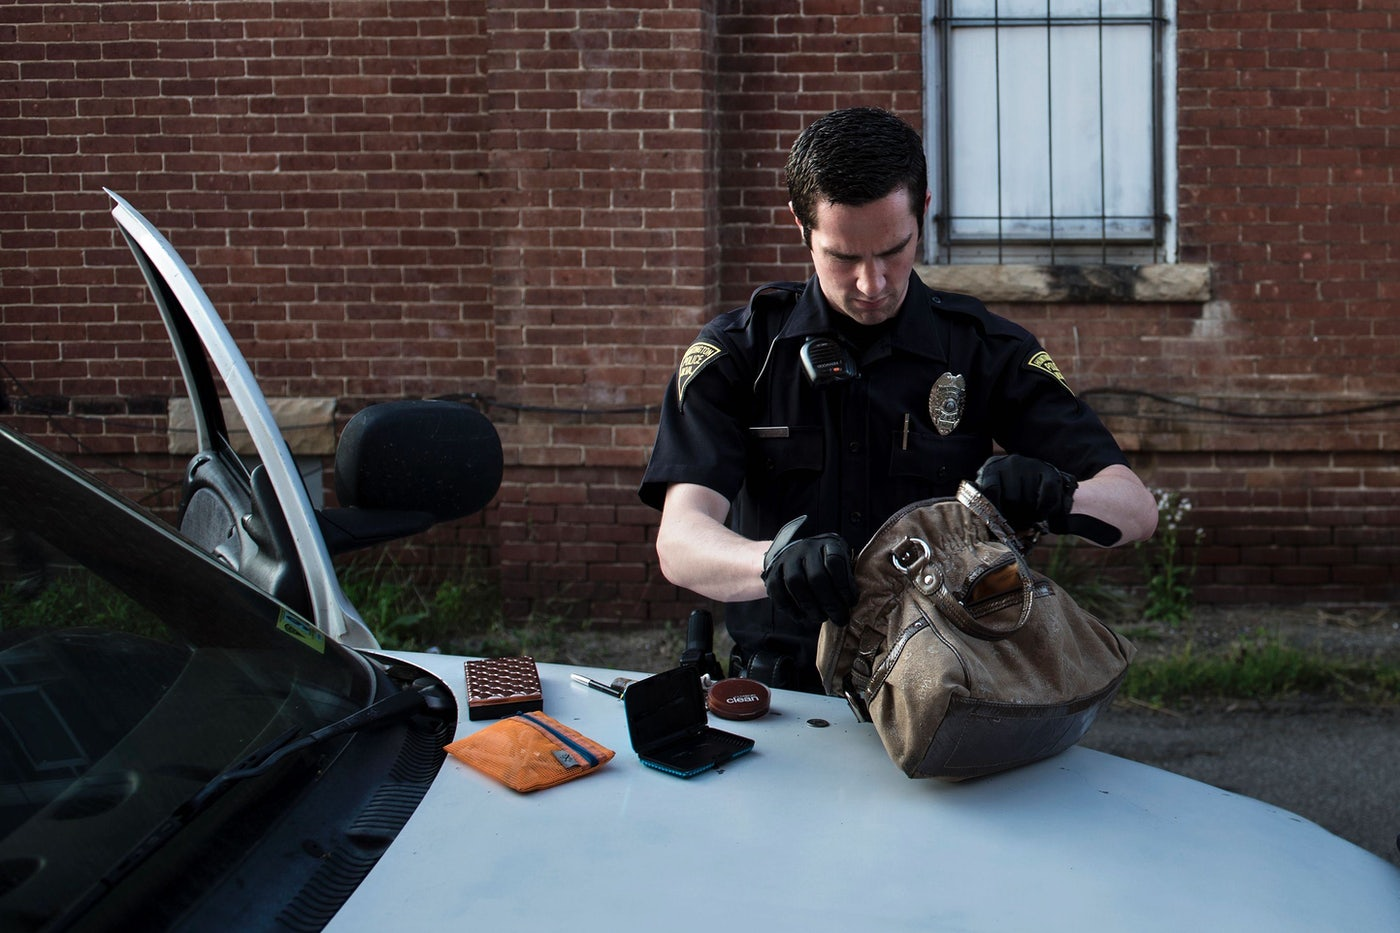 Should Cops Be Allowed to Rip Up Your Stuff While Looking for Drugs? | The New Republic